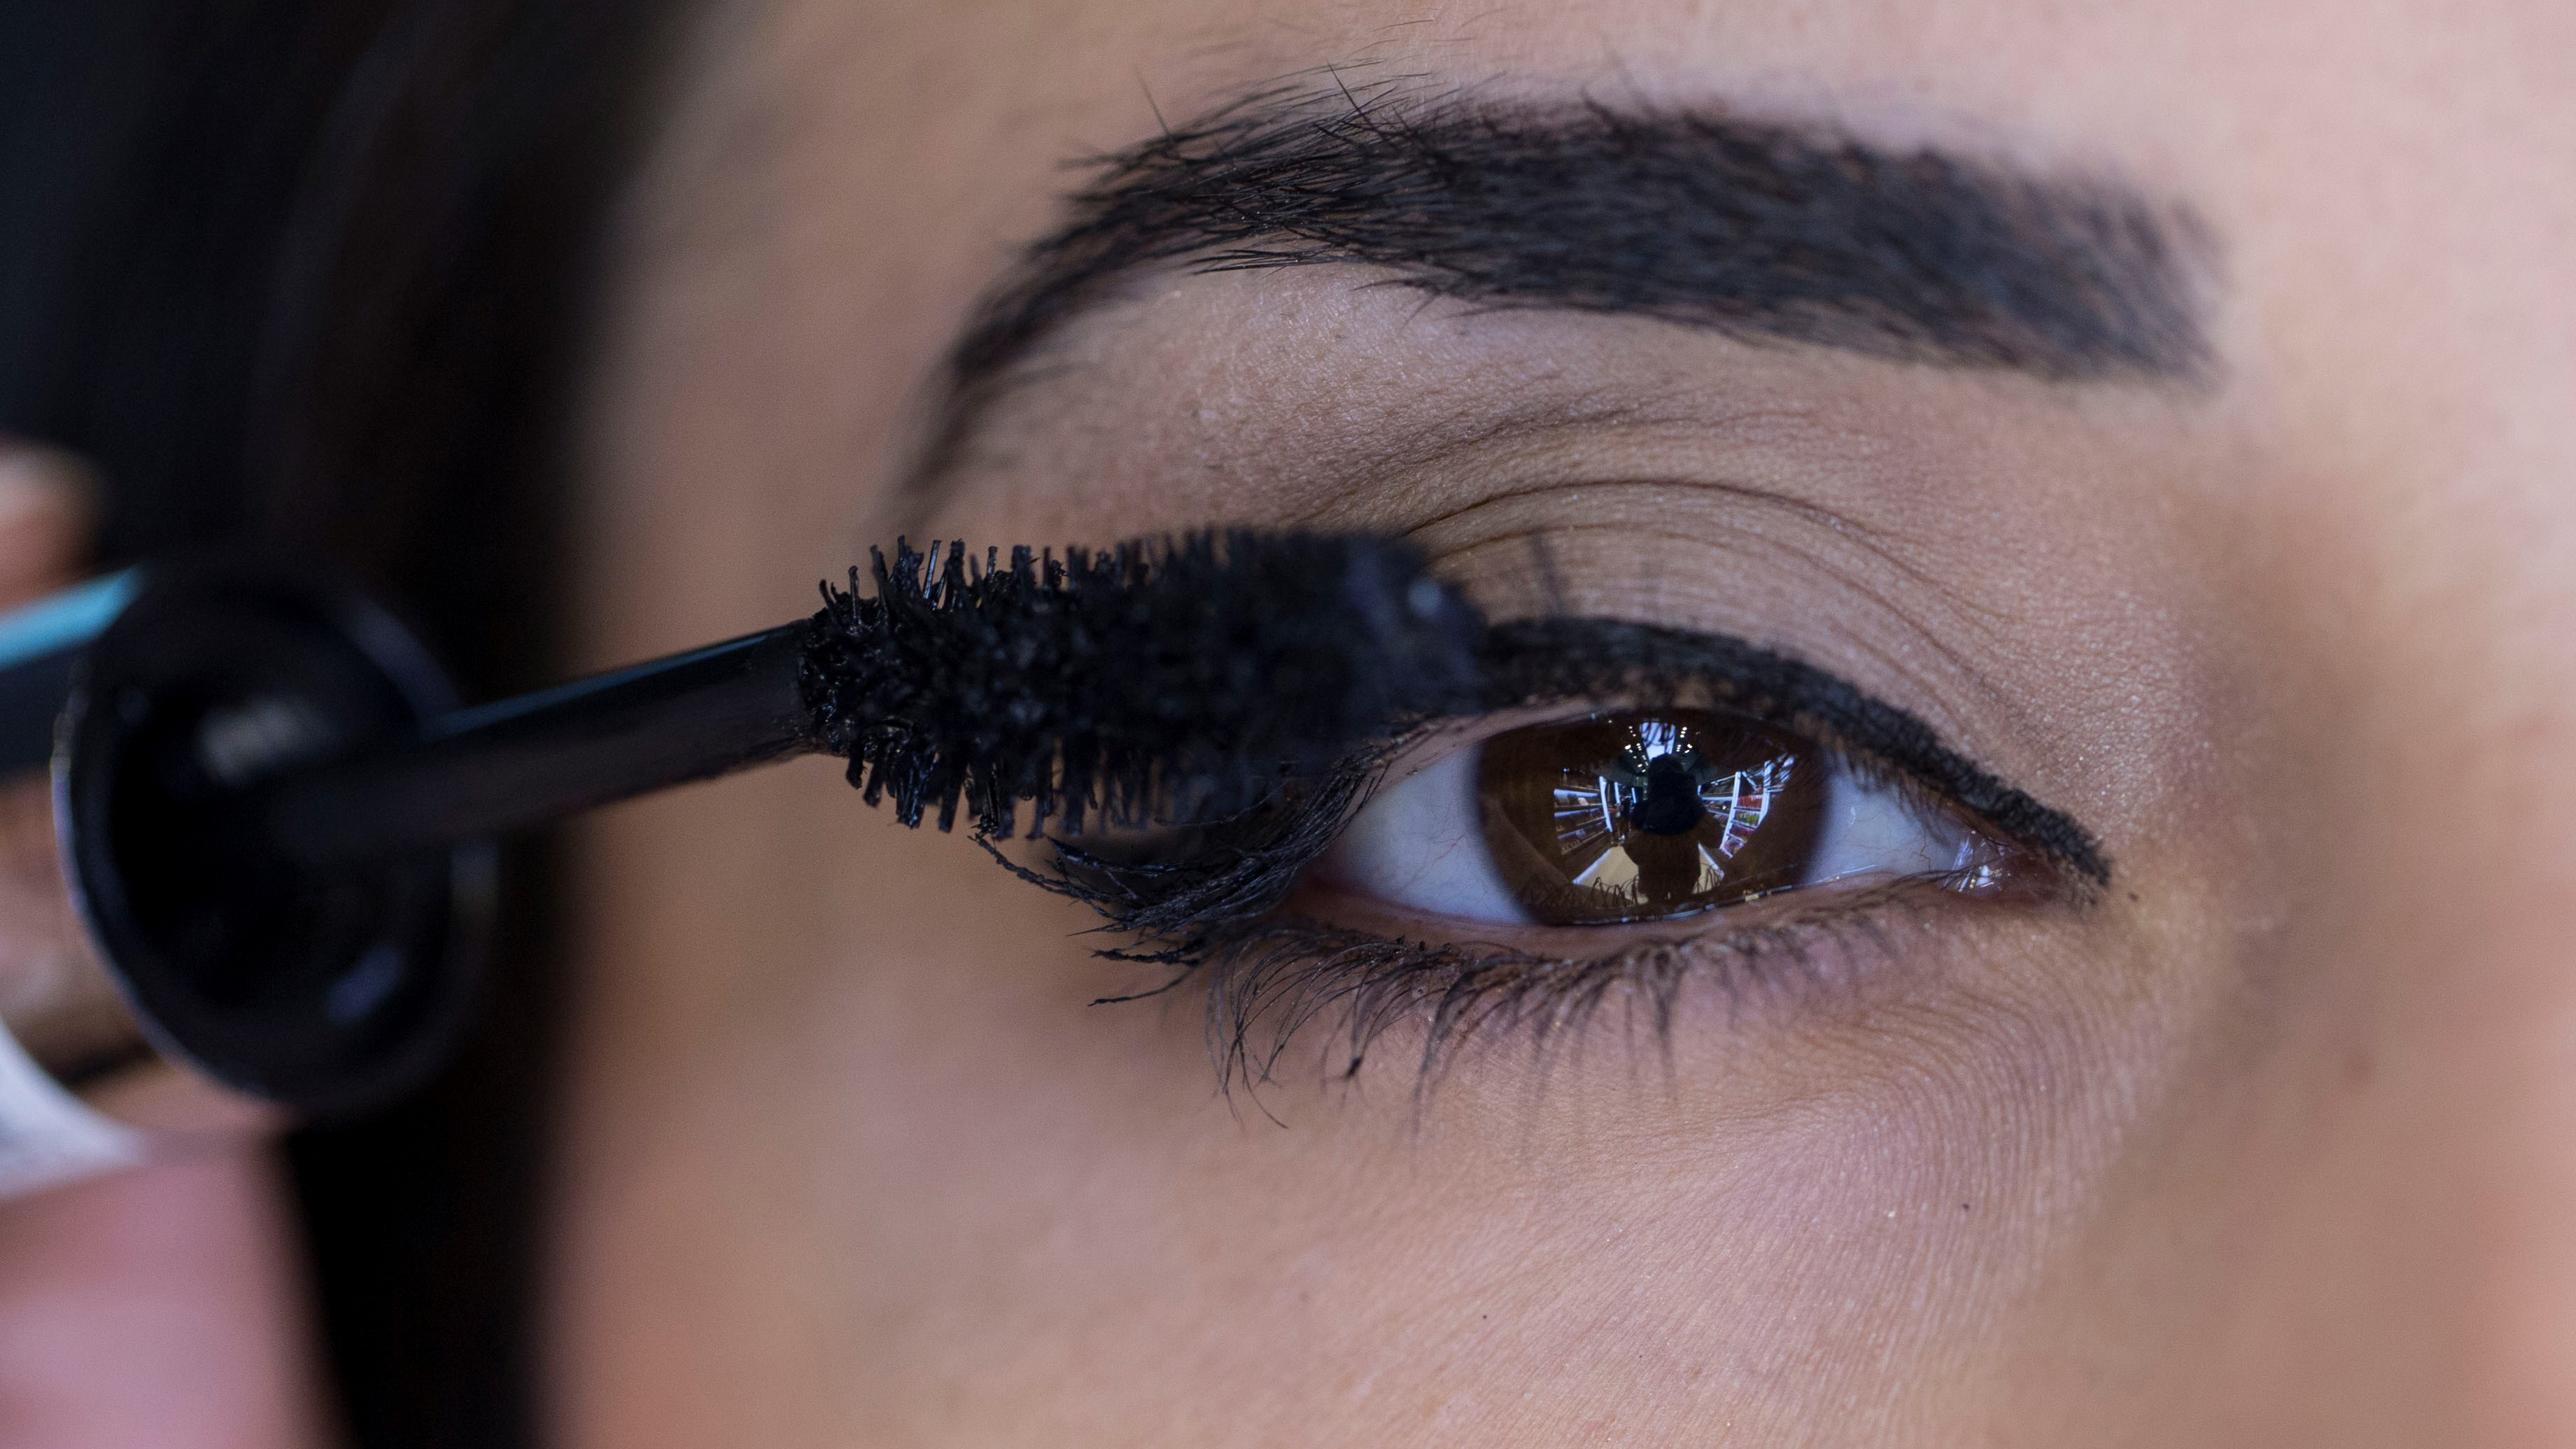 Makeup may contain potentially toxic chemicals called PFAS, study finds